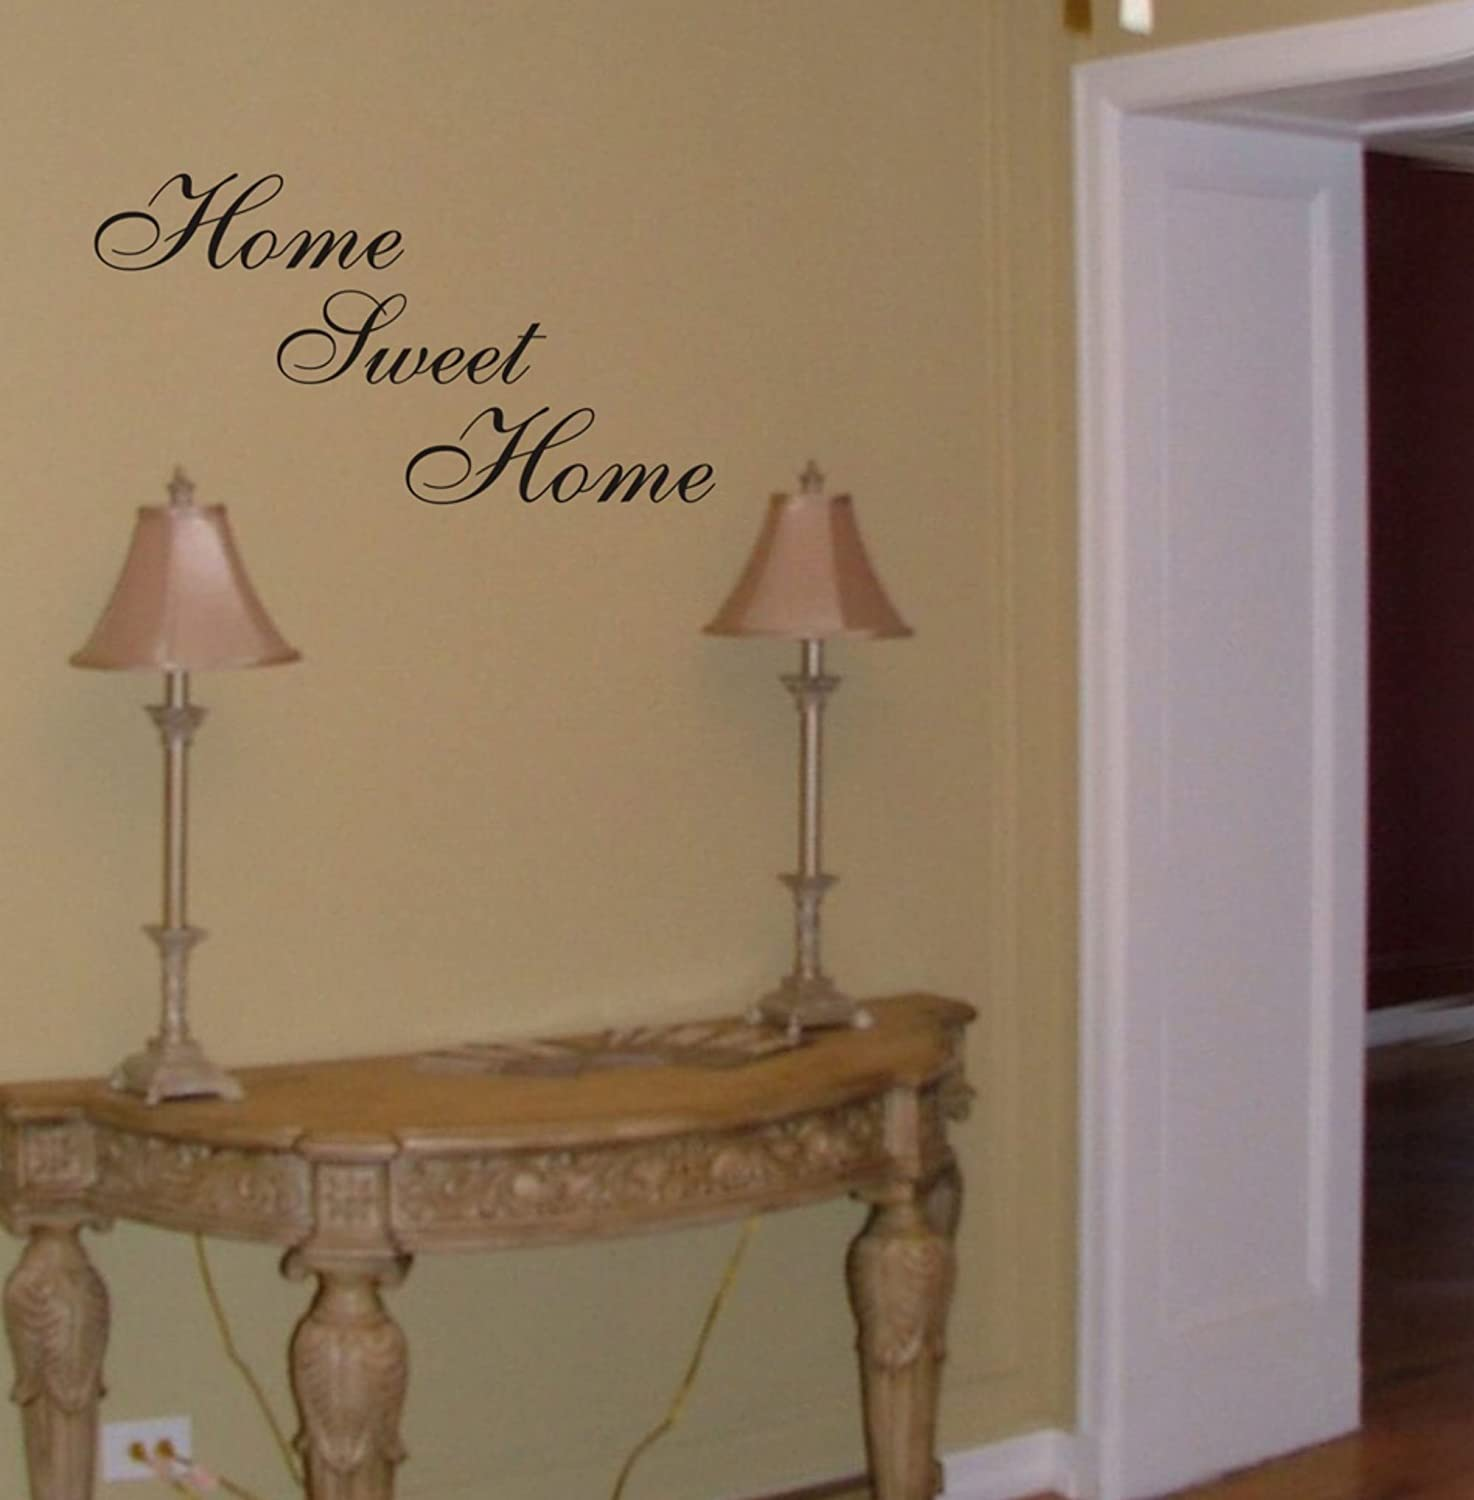 Wall stickers home sweet home - Wall Stickers Home Sweet Home 34